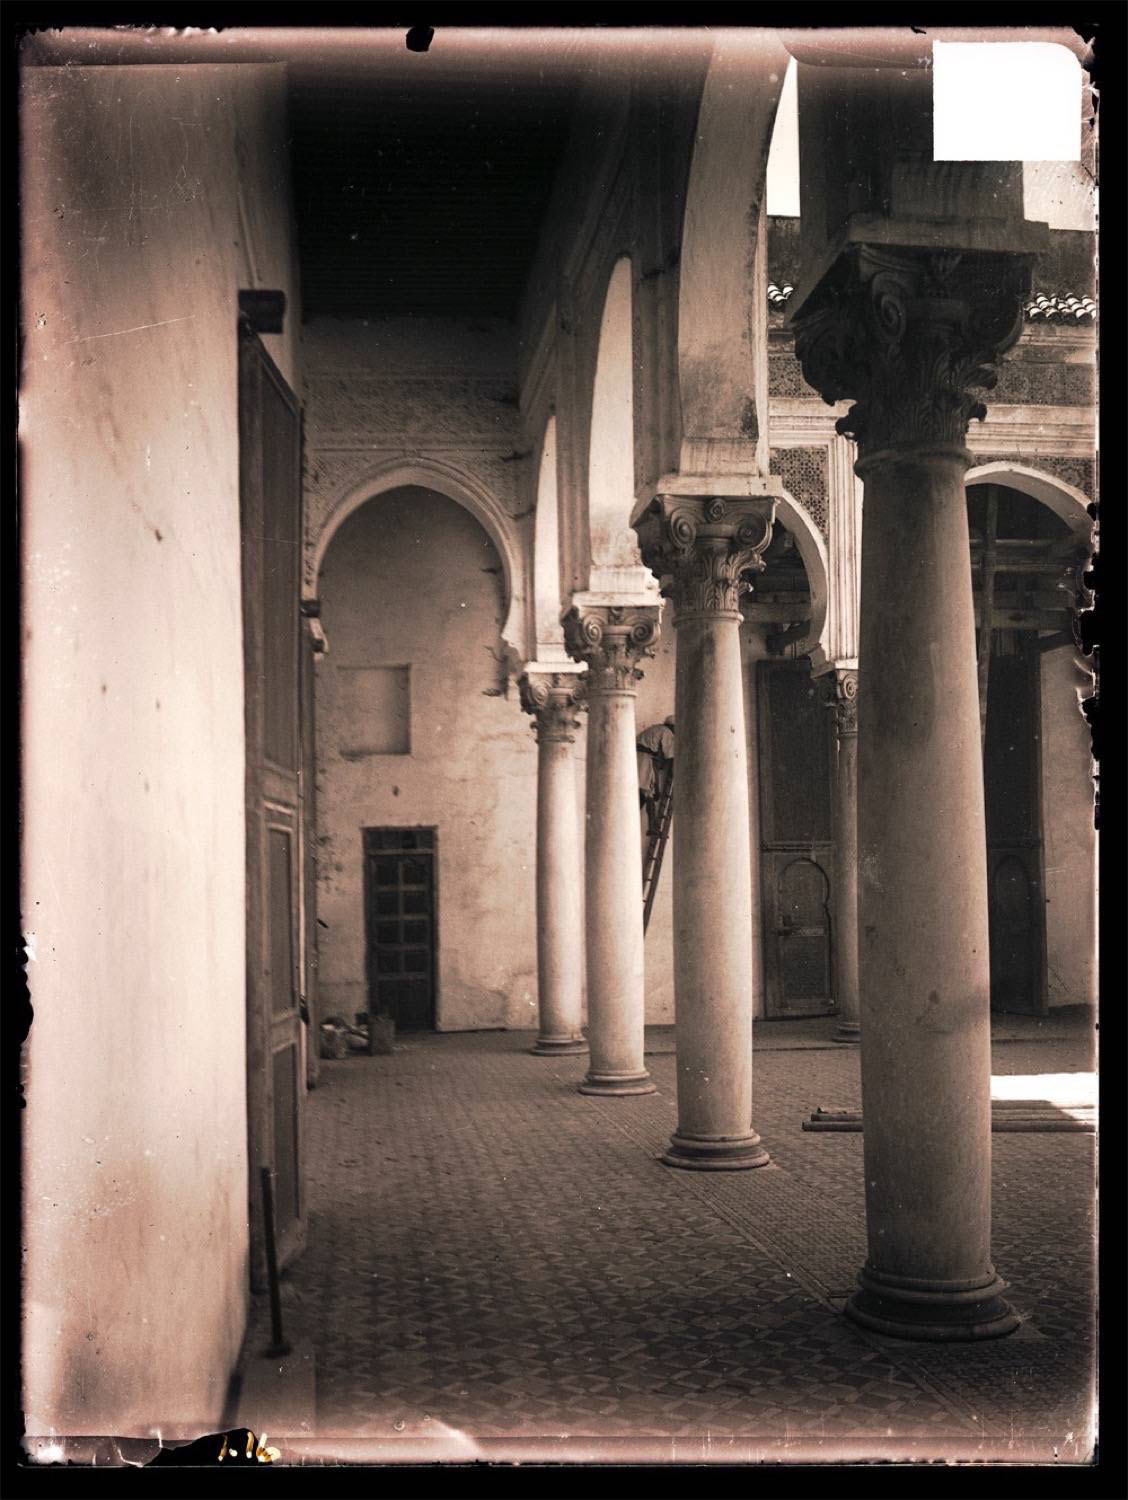 Interior view of the palace courtyard, with colonnade.